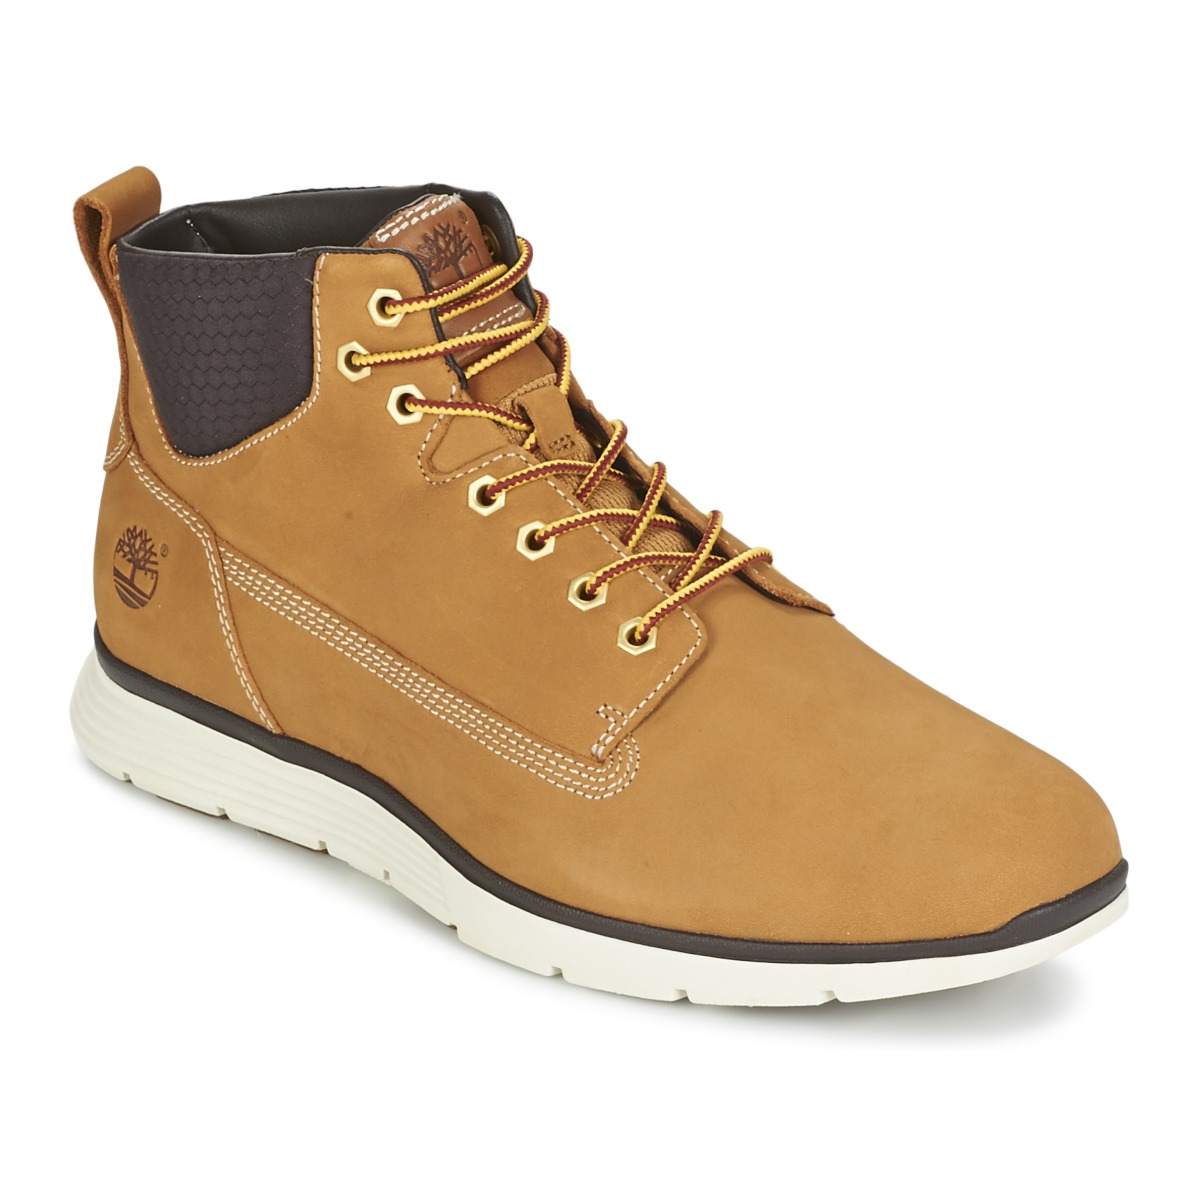 Winter Shoes For Men Price